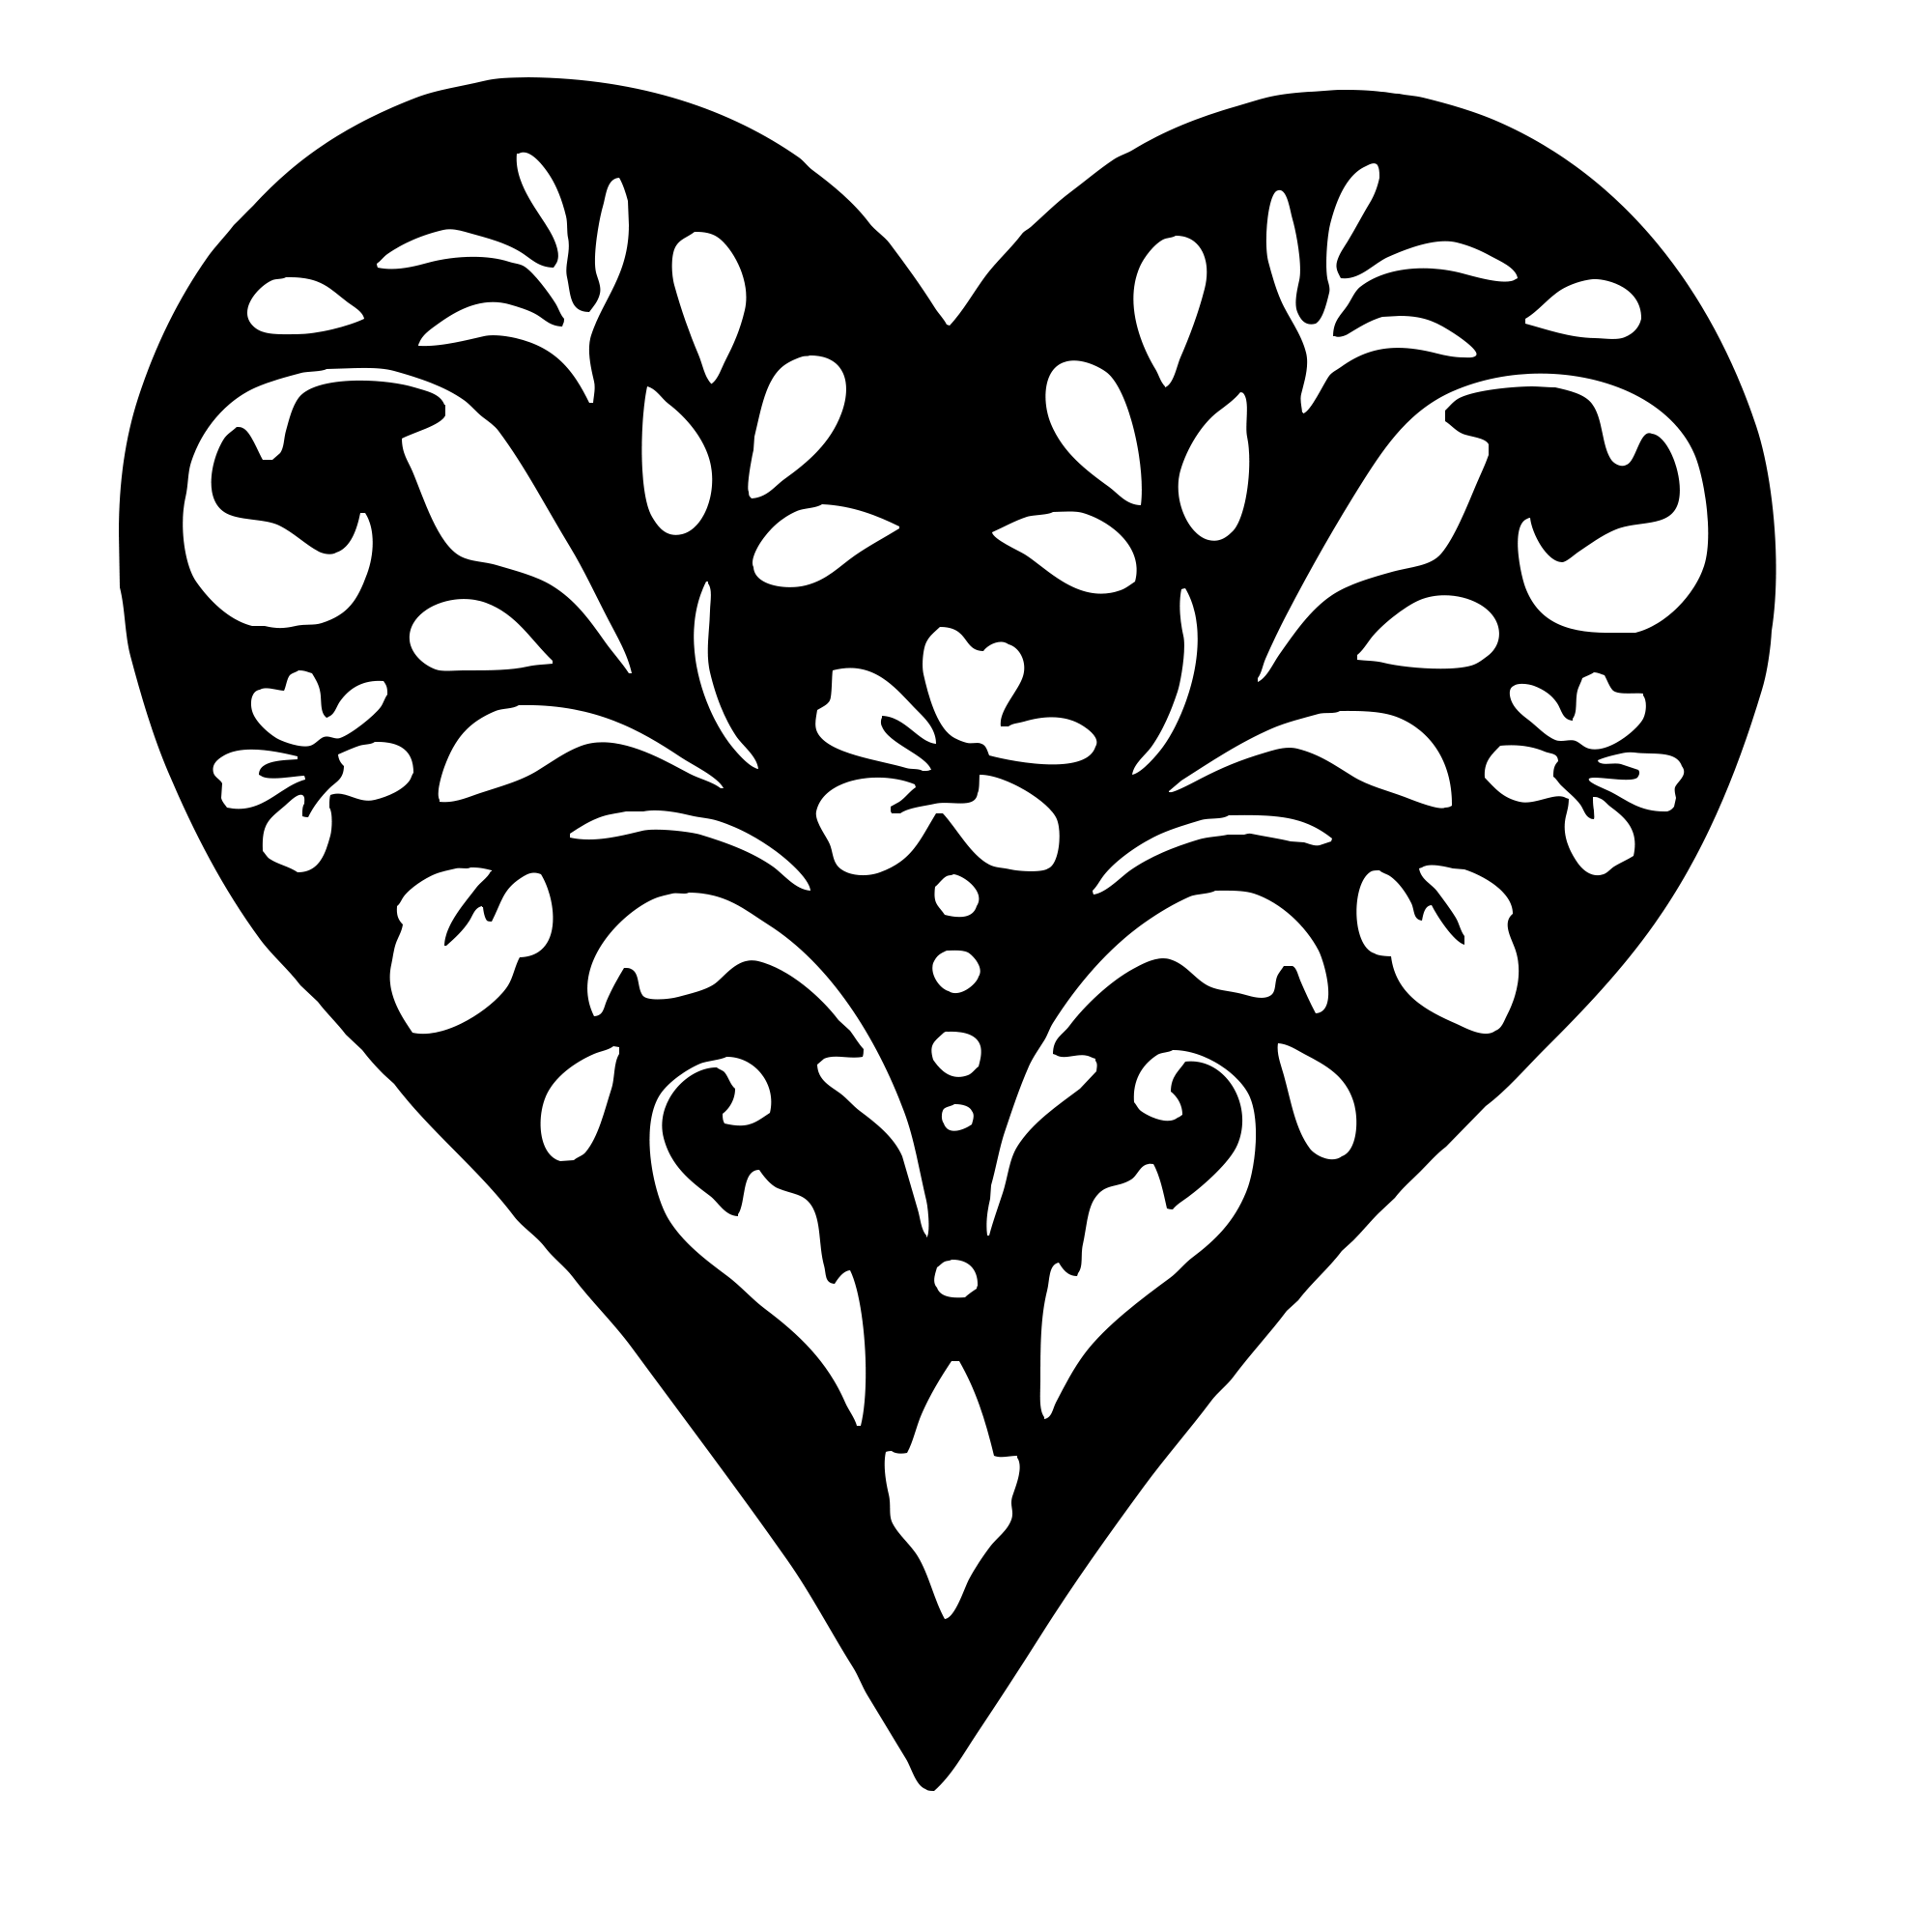 printable hearts coloring pages free printable heart coloring pages for kids cool2bkids hearts coloring pages printable